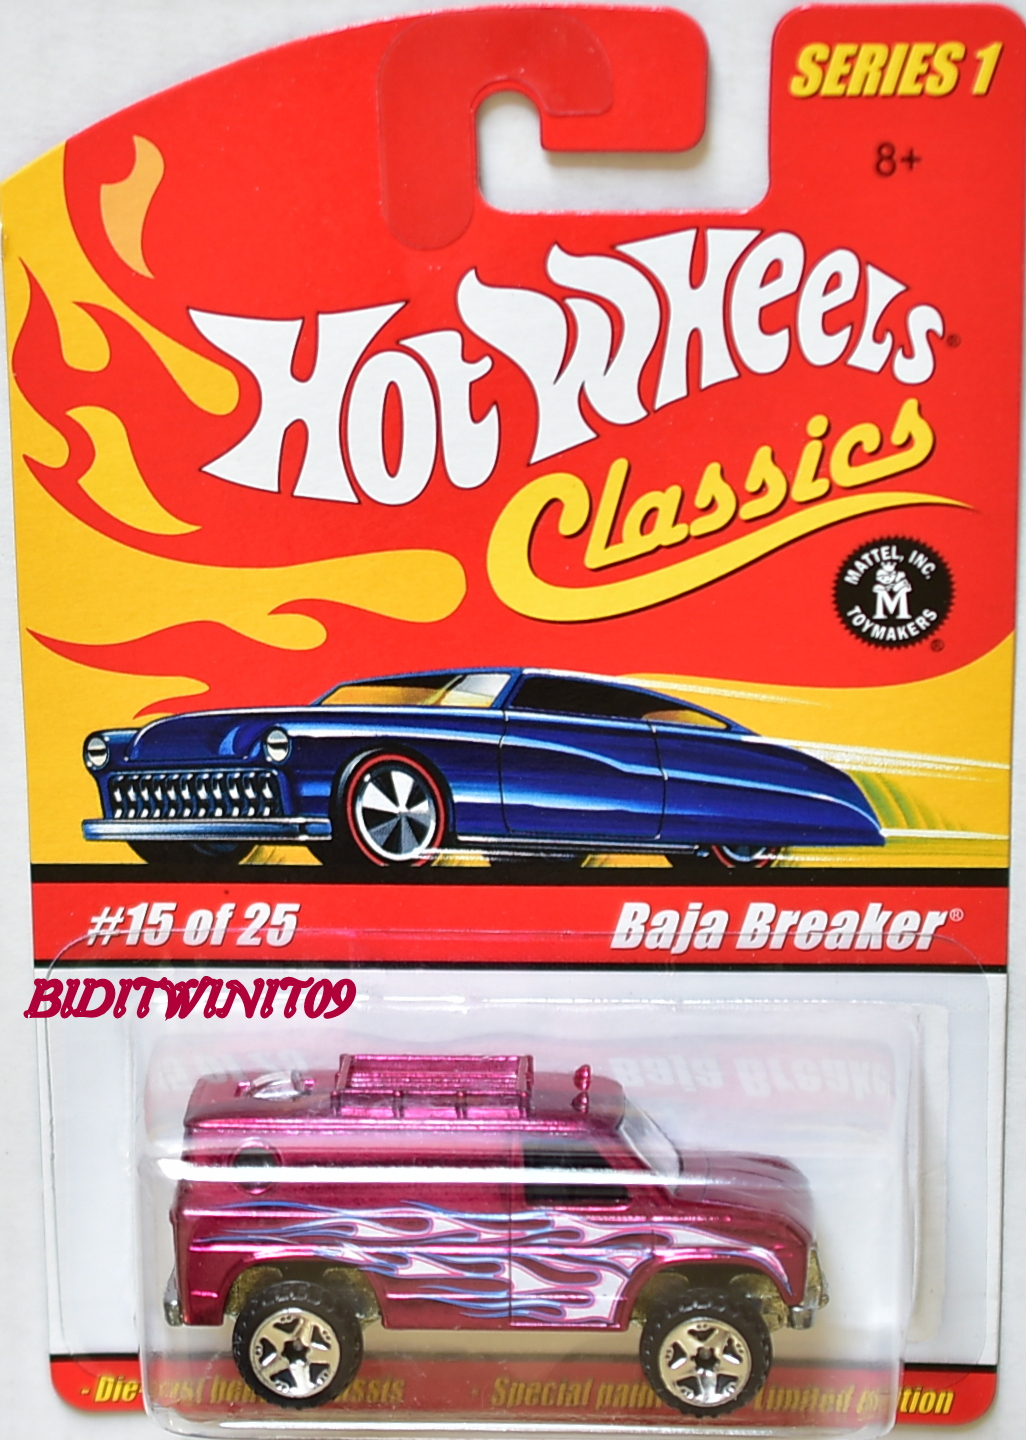 42679 Best Worst Cars Youve Ever Owned as well Hot Wheels Cars Treasure Hunts furthermore Hot Wheels Classics Series 1 15 25 Baja Breaker Purple E further Molly Pitcher additionally 782467001. on e oscar mayer wienermobile